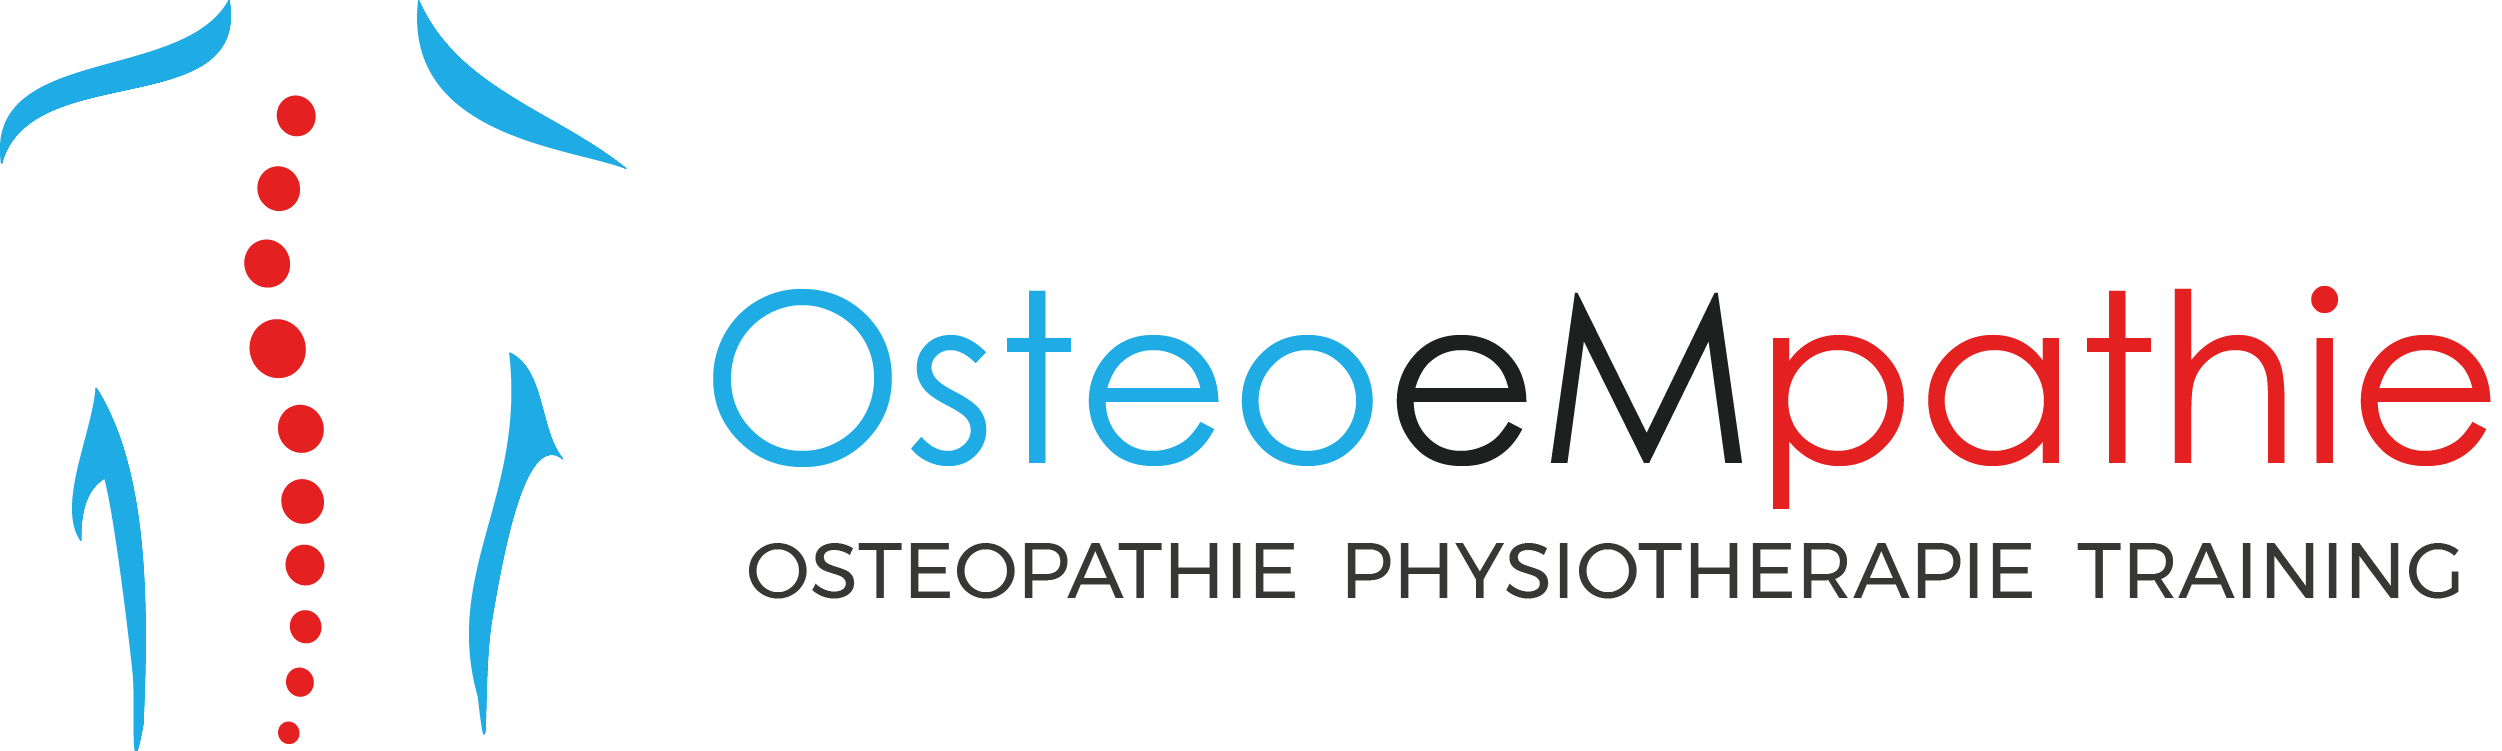 Osteoempathie Osteopathie Physiotherapie Training